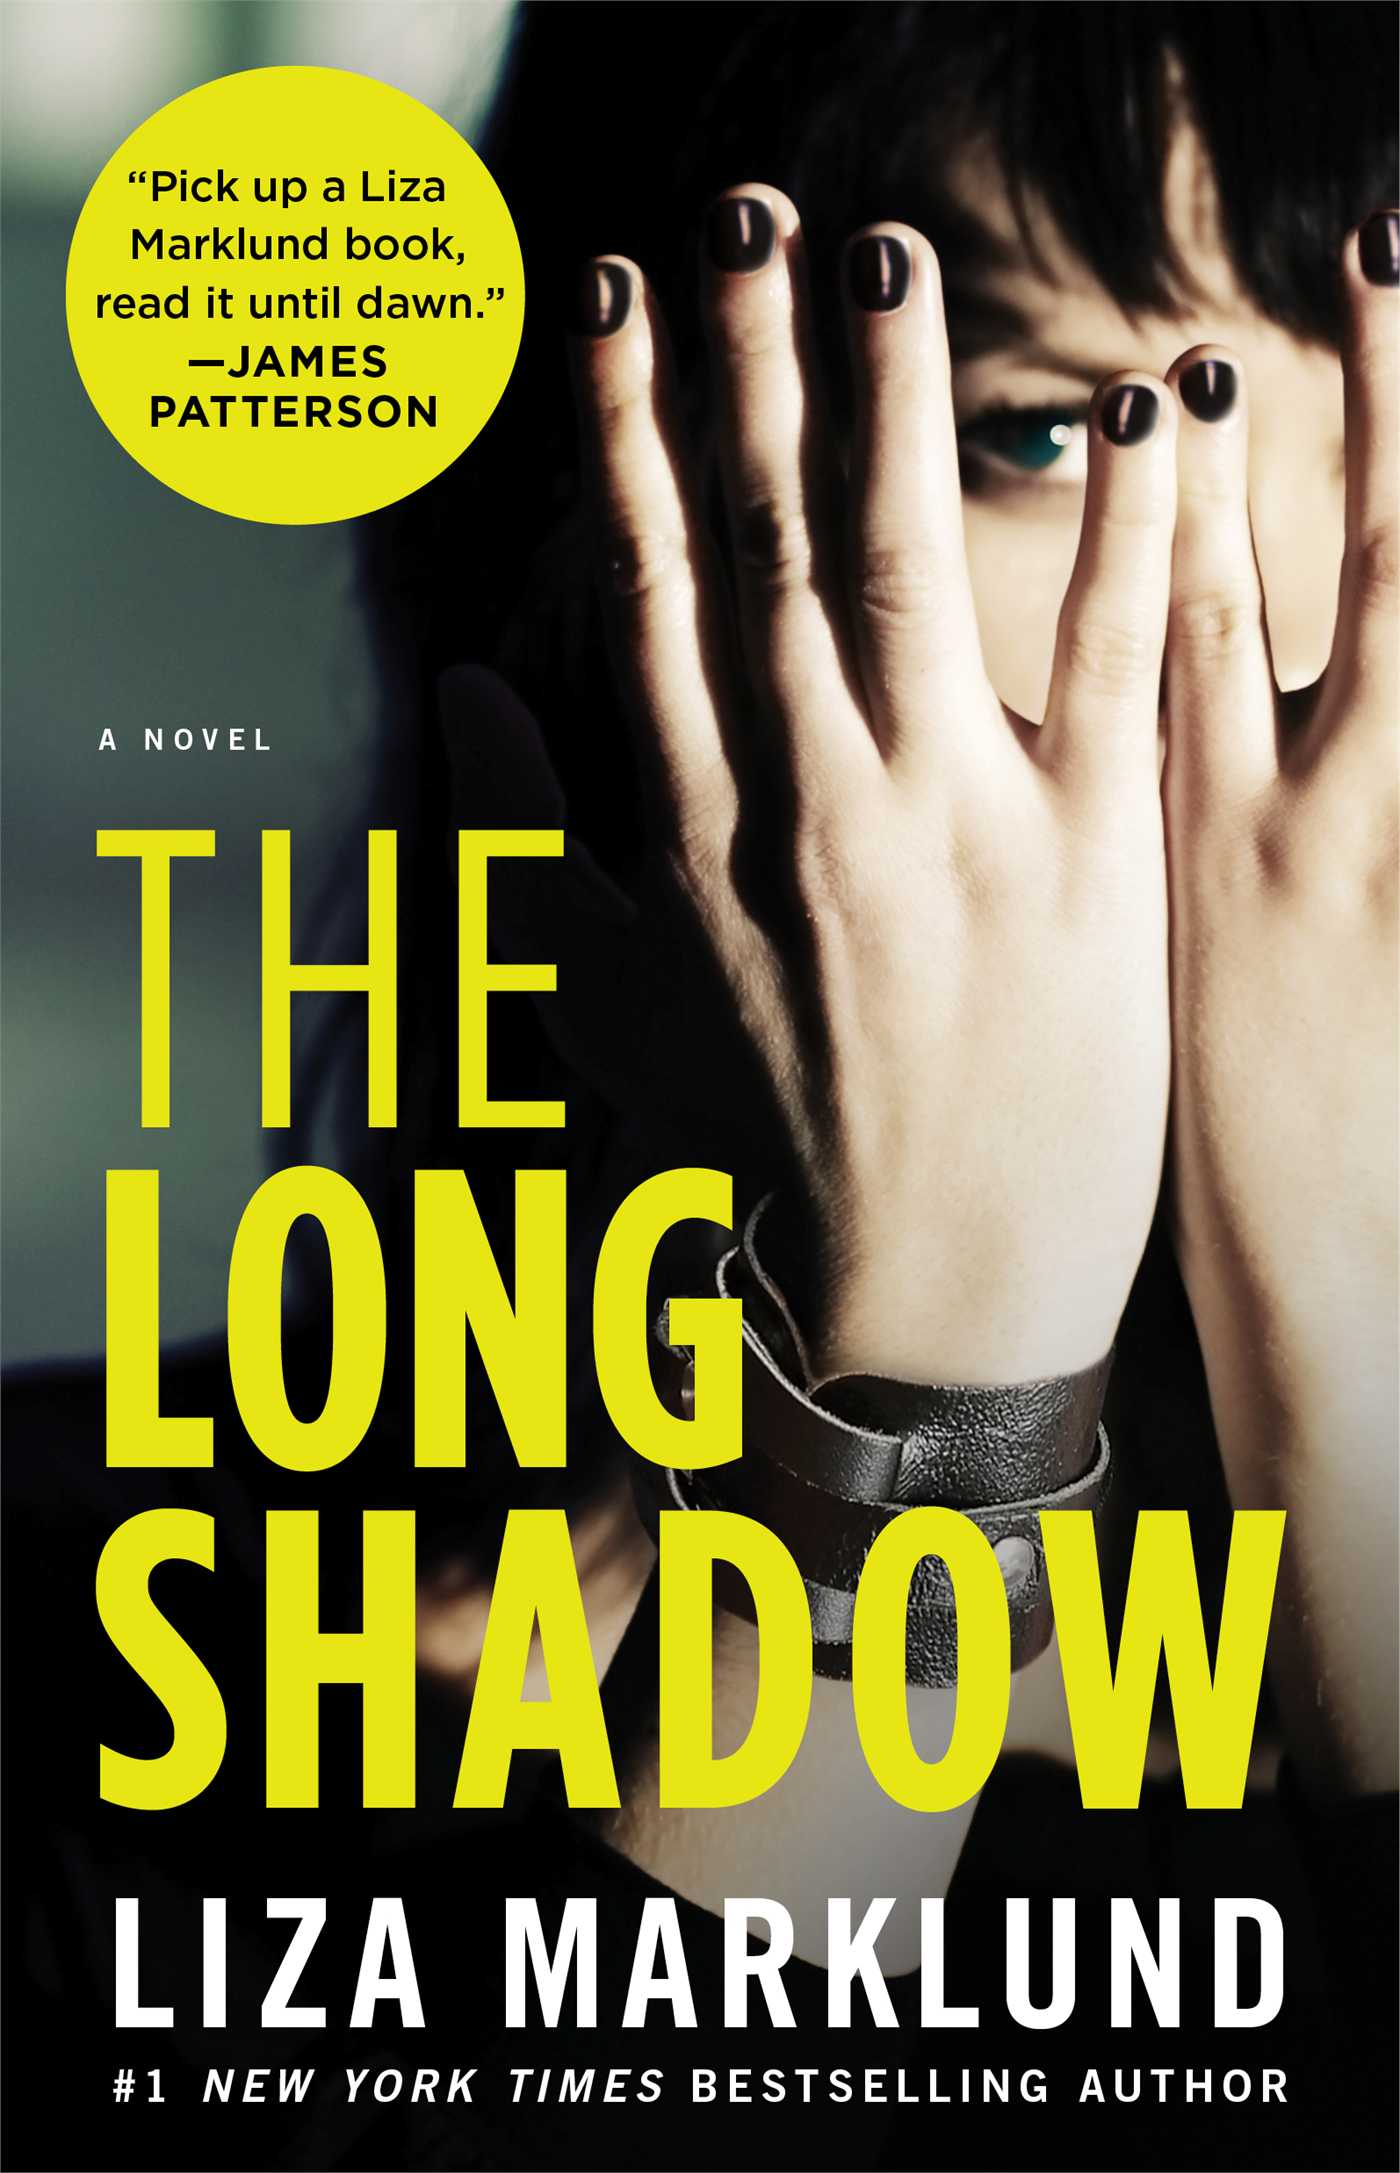 Long-shadow-9781451607079_hr